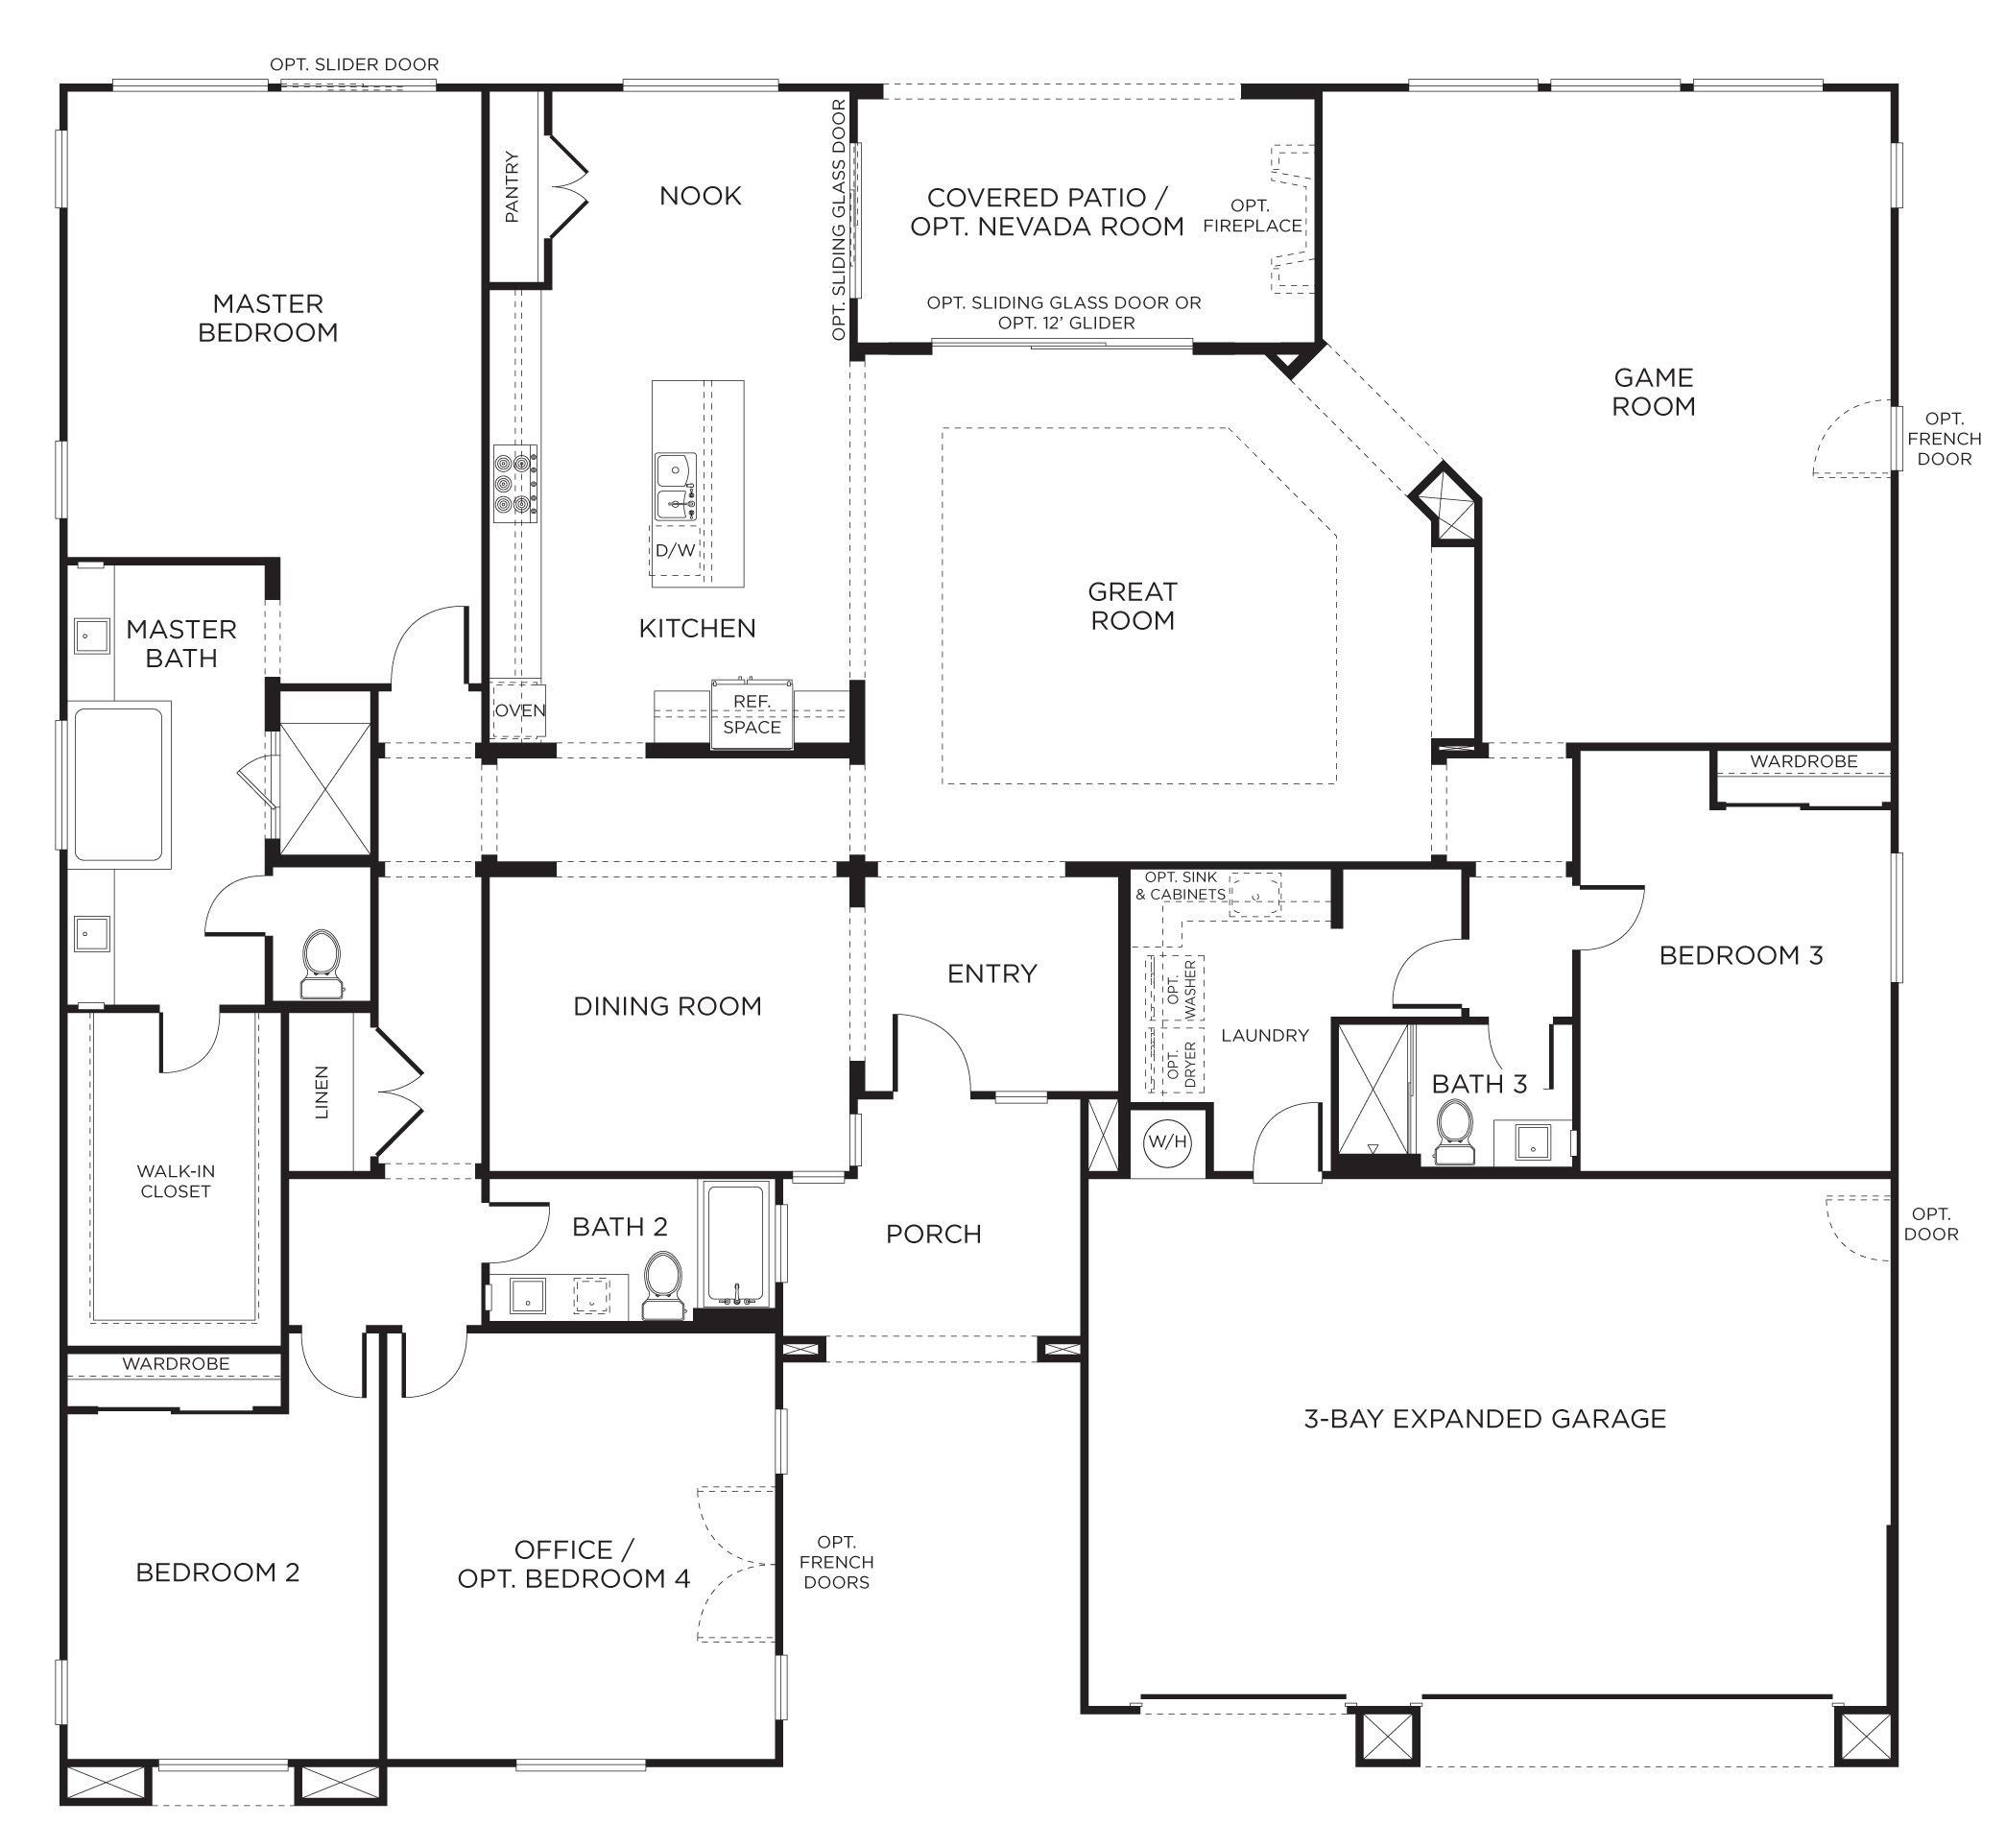 2 bedroom home floor plans floorplan 2 3 4 bedrooms 3 bathrooms 3400 square 22822